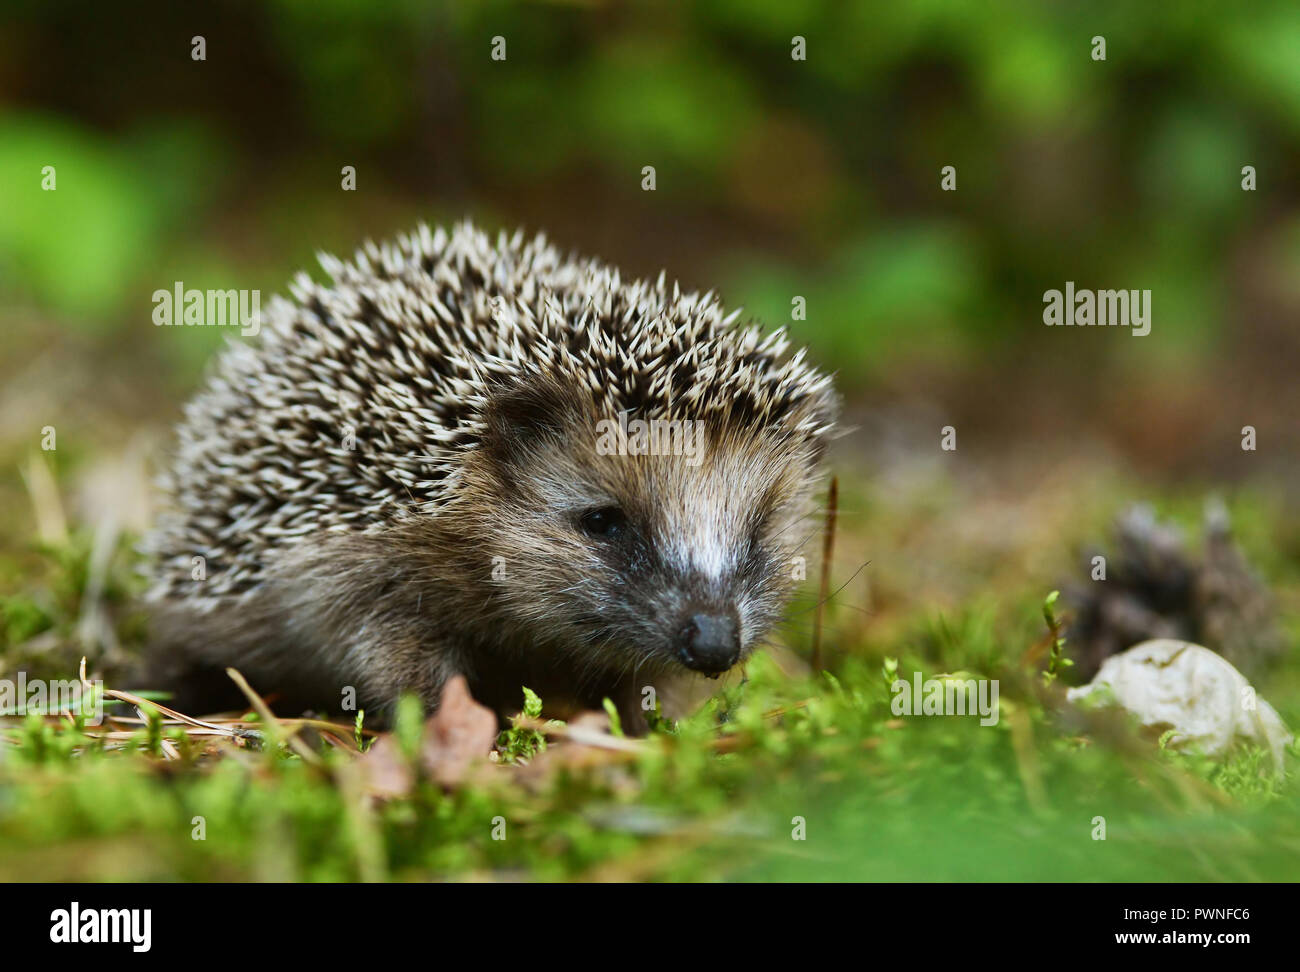 Young hedgehog - Stock Image